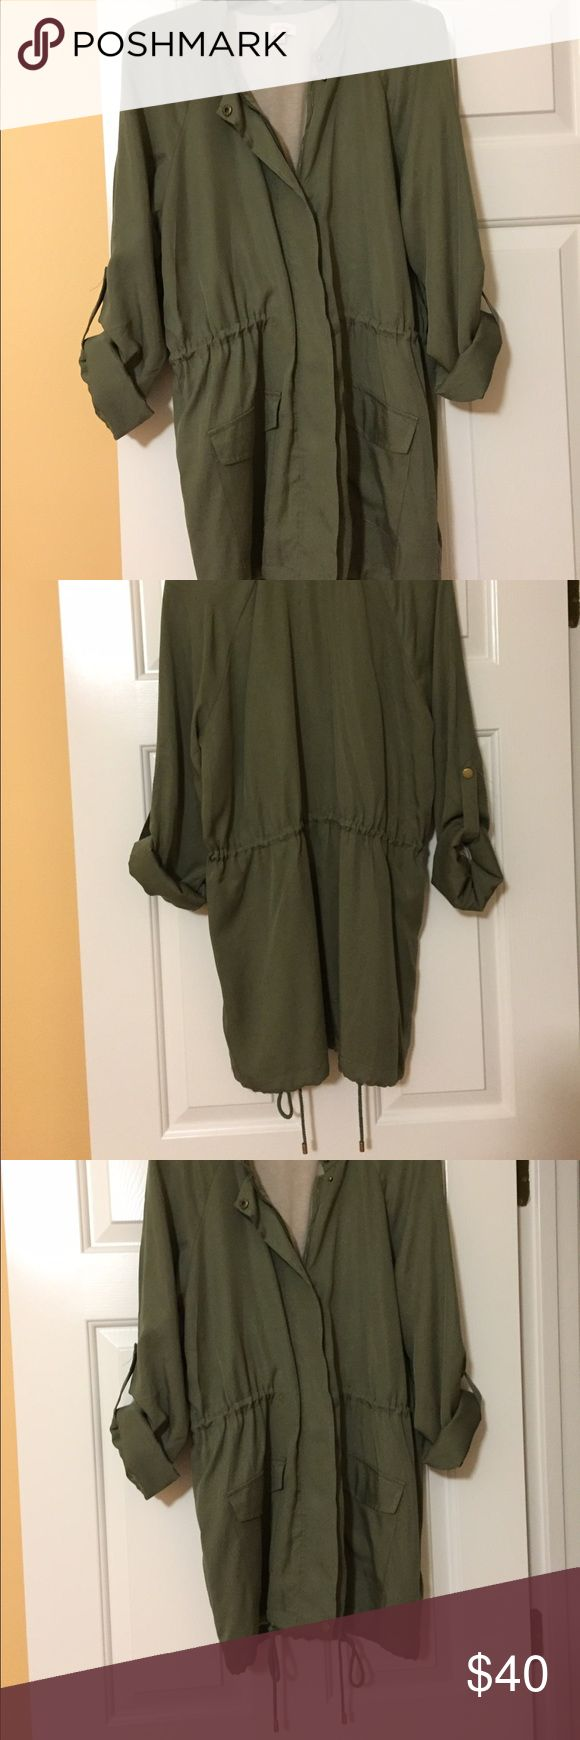 "Ultra soft Spring parka style jacket Never worn. This jacket is made from a silky fabric and is so soft. Olive green parka style. Size S. length from shoulder to bottom is approximately 30"". Also has detachable hood. Jackets & Coats Utility Jackets"